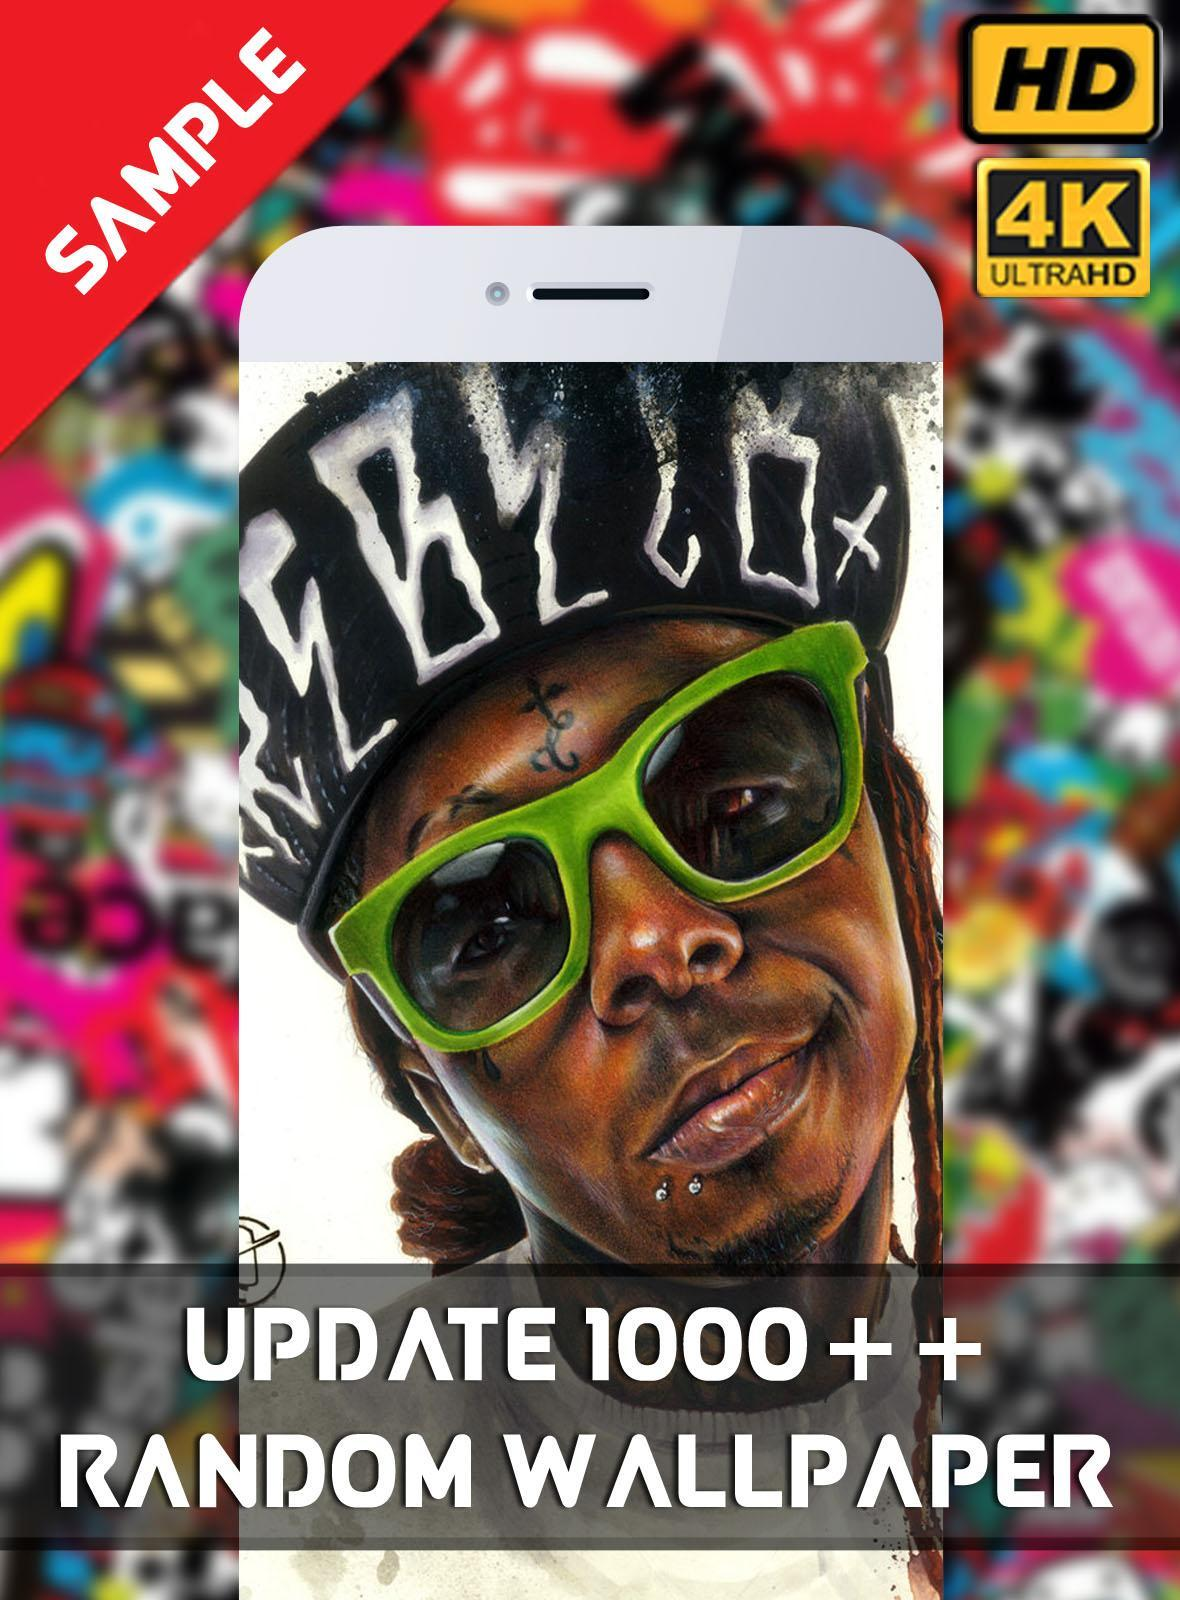 Lil Wayne Wallpaper Hd For Android Apk Download